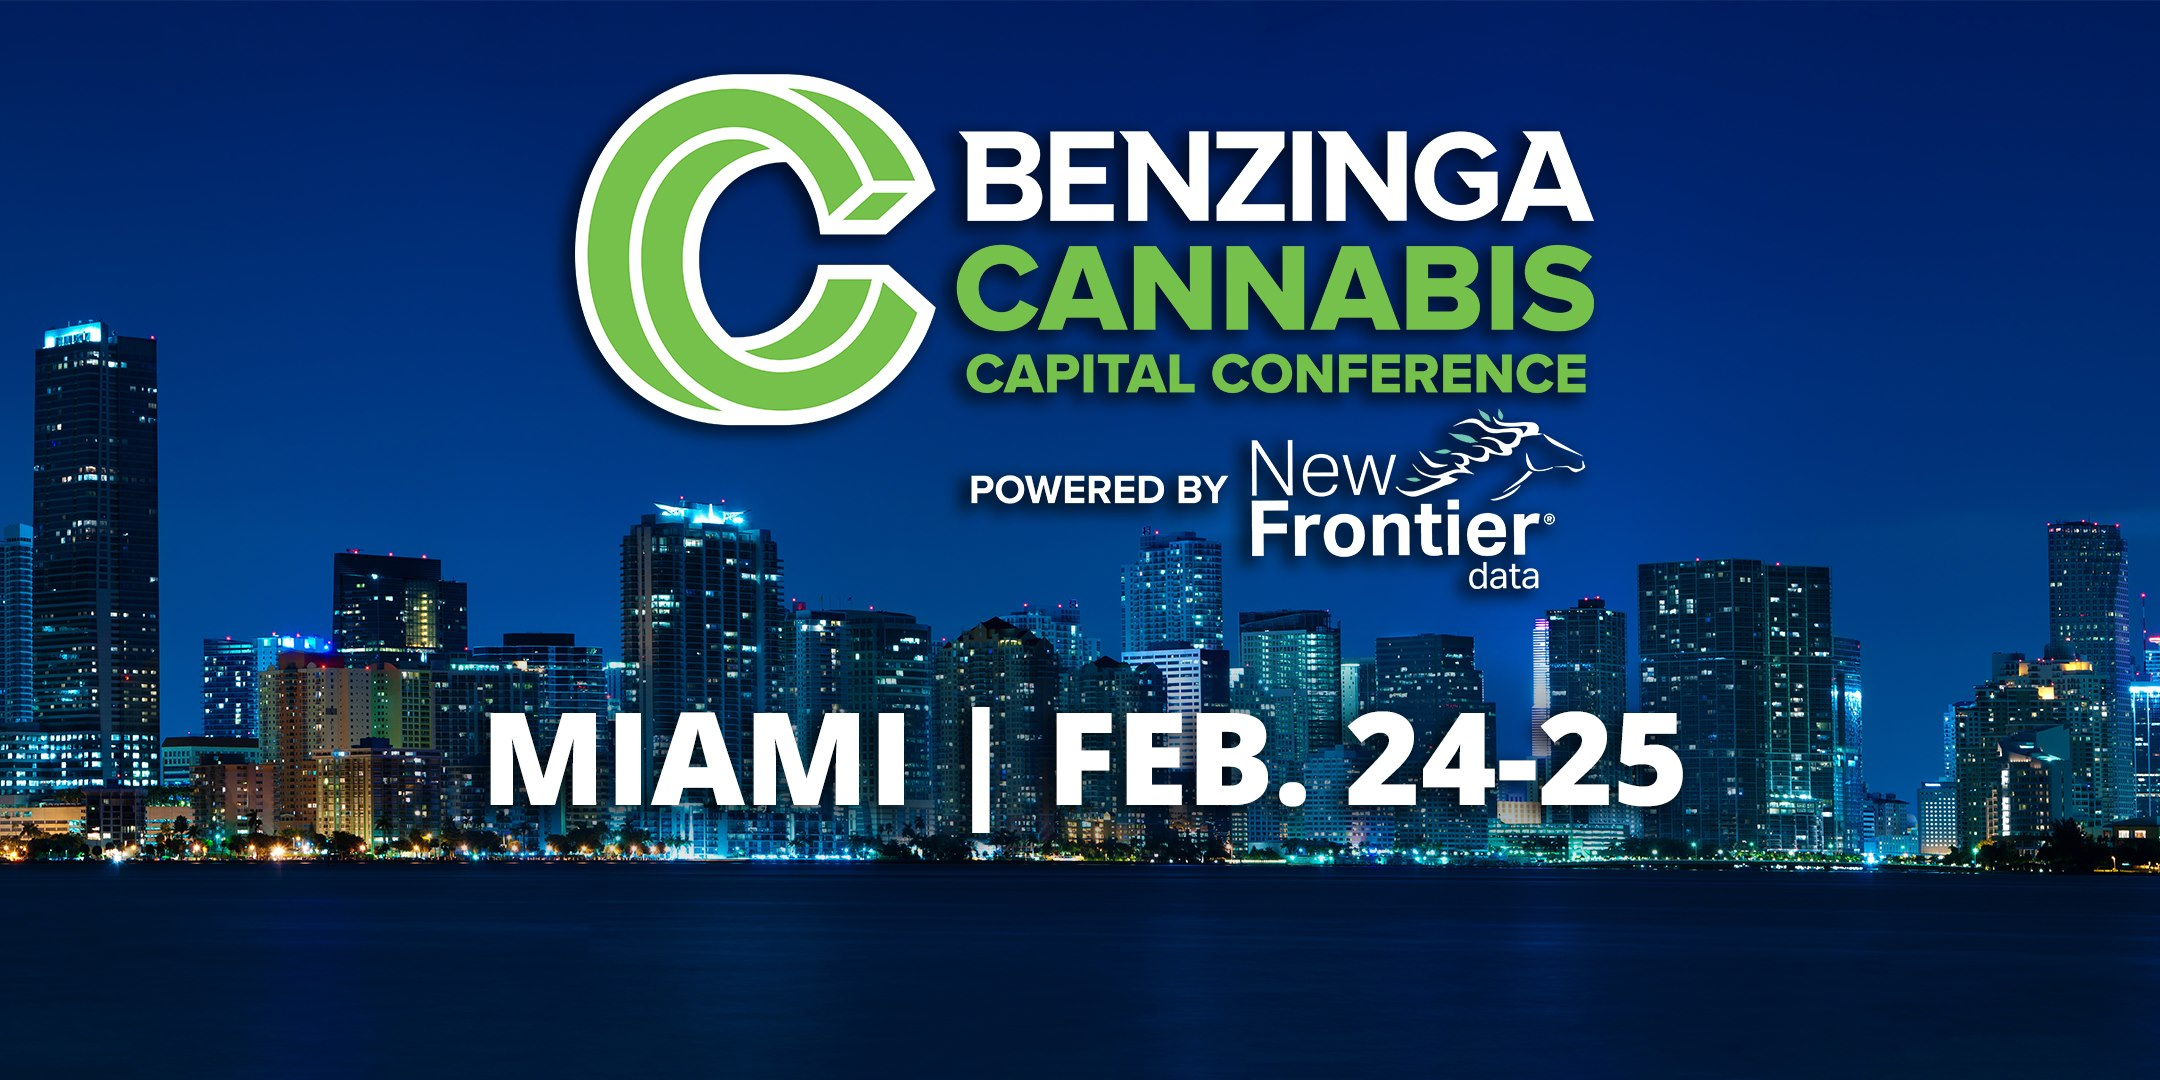 Benzinga 2020 Cannabis Capital Conference Miami